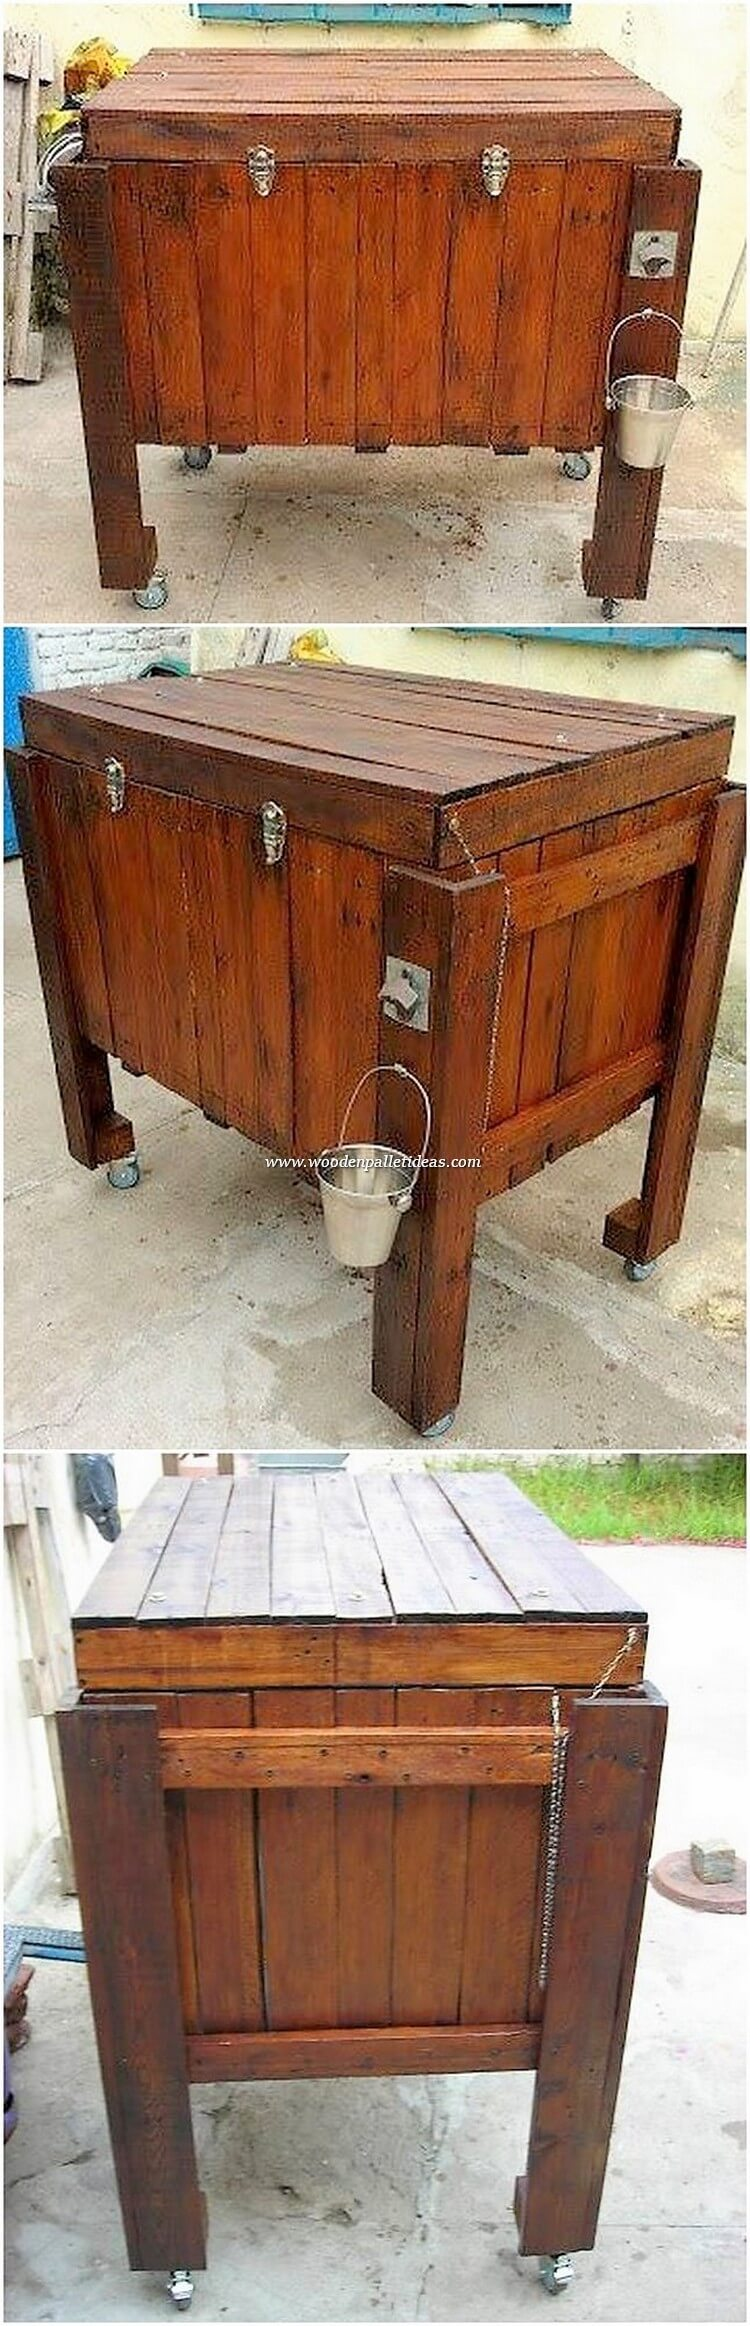 Pallet-Cooler-on-Wheels